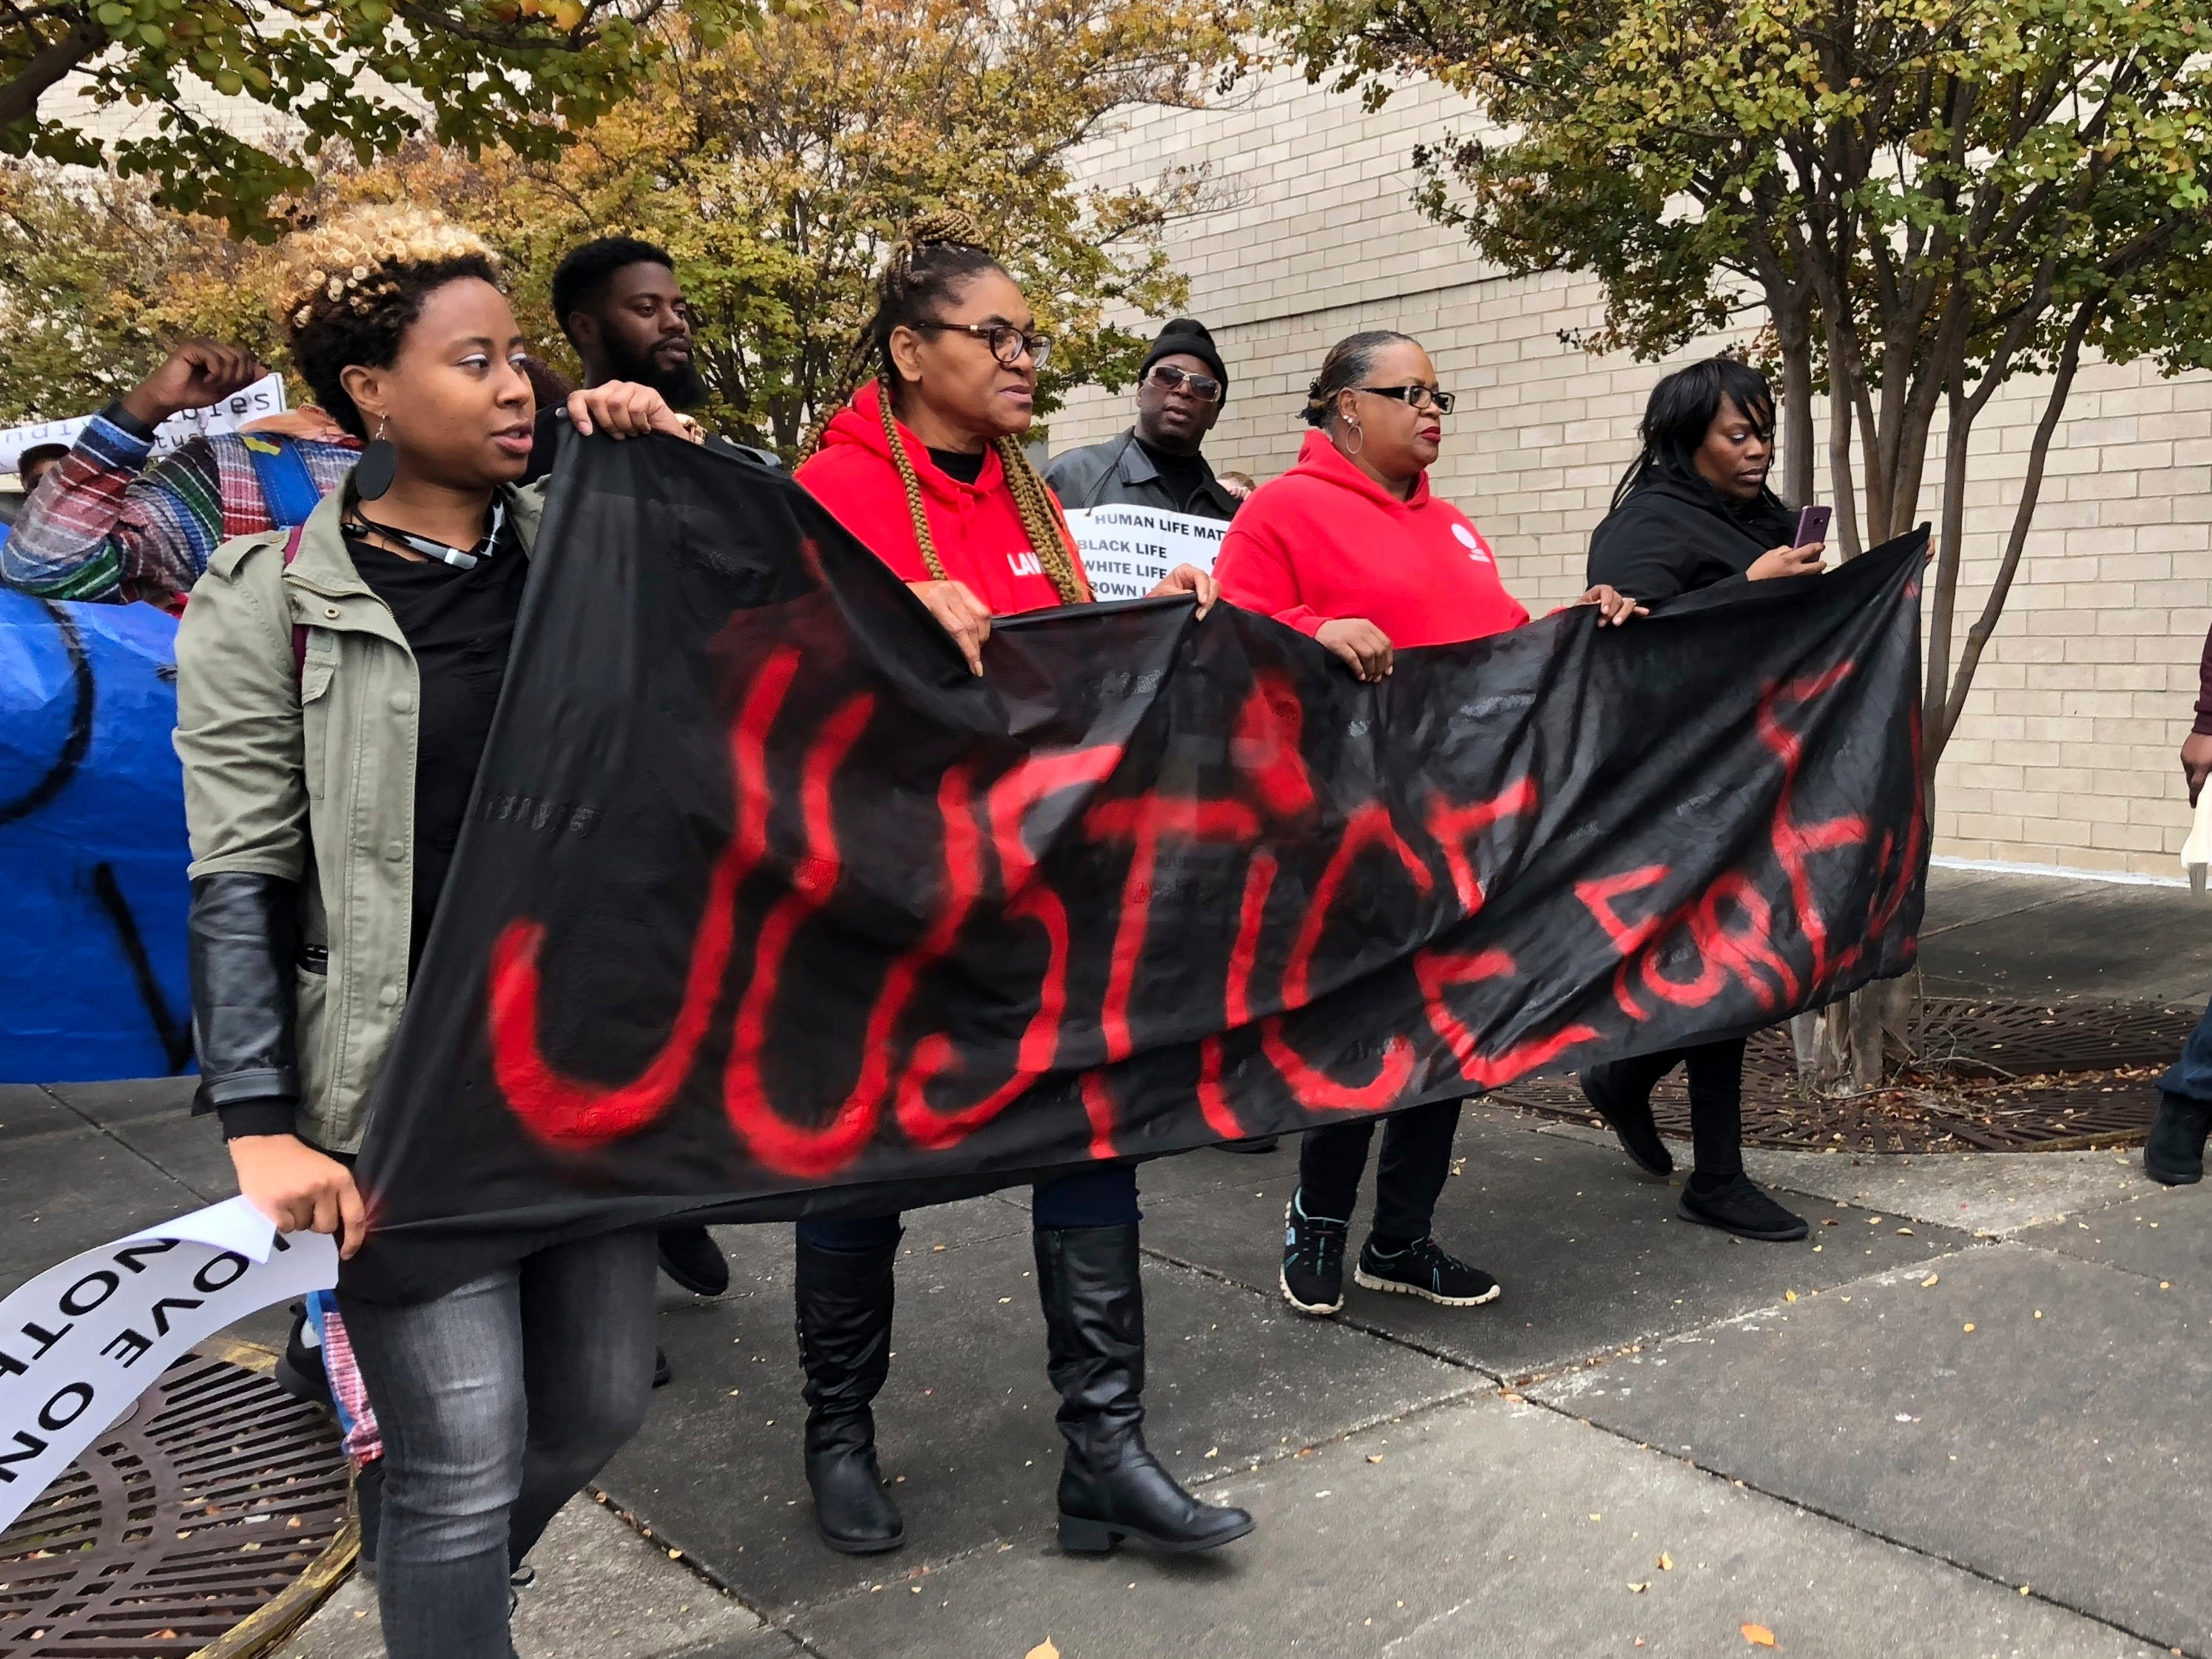 """Protestors carry a sign reading """"Justice for E.J."""" during a protest at the Riverchase Galleria mall in Alabama on Saturday, Nov. 24, 2018."""